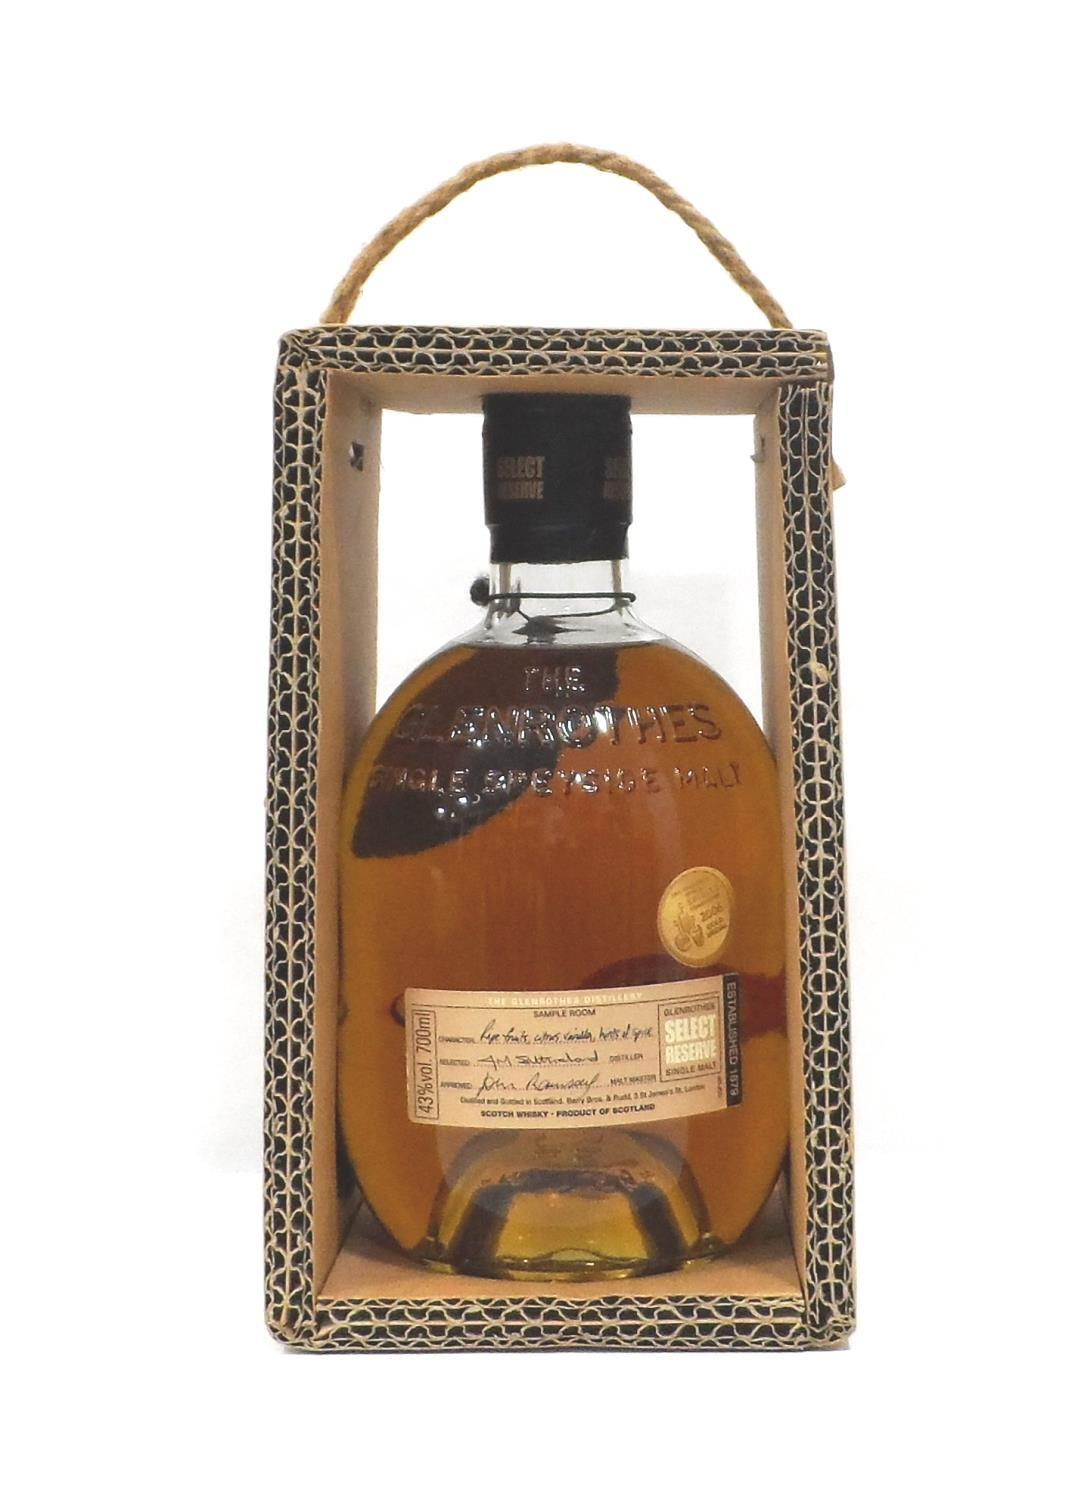 GLENROTHES SELECT RESERVE A bottle of the Glenrothes Select Reserve Single Malt Scotch Whisky. 70cl.